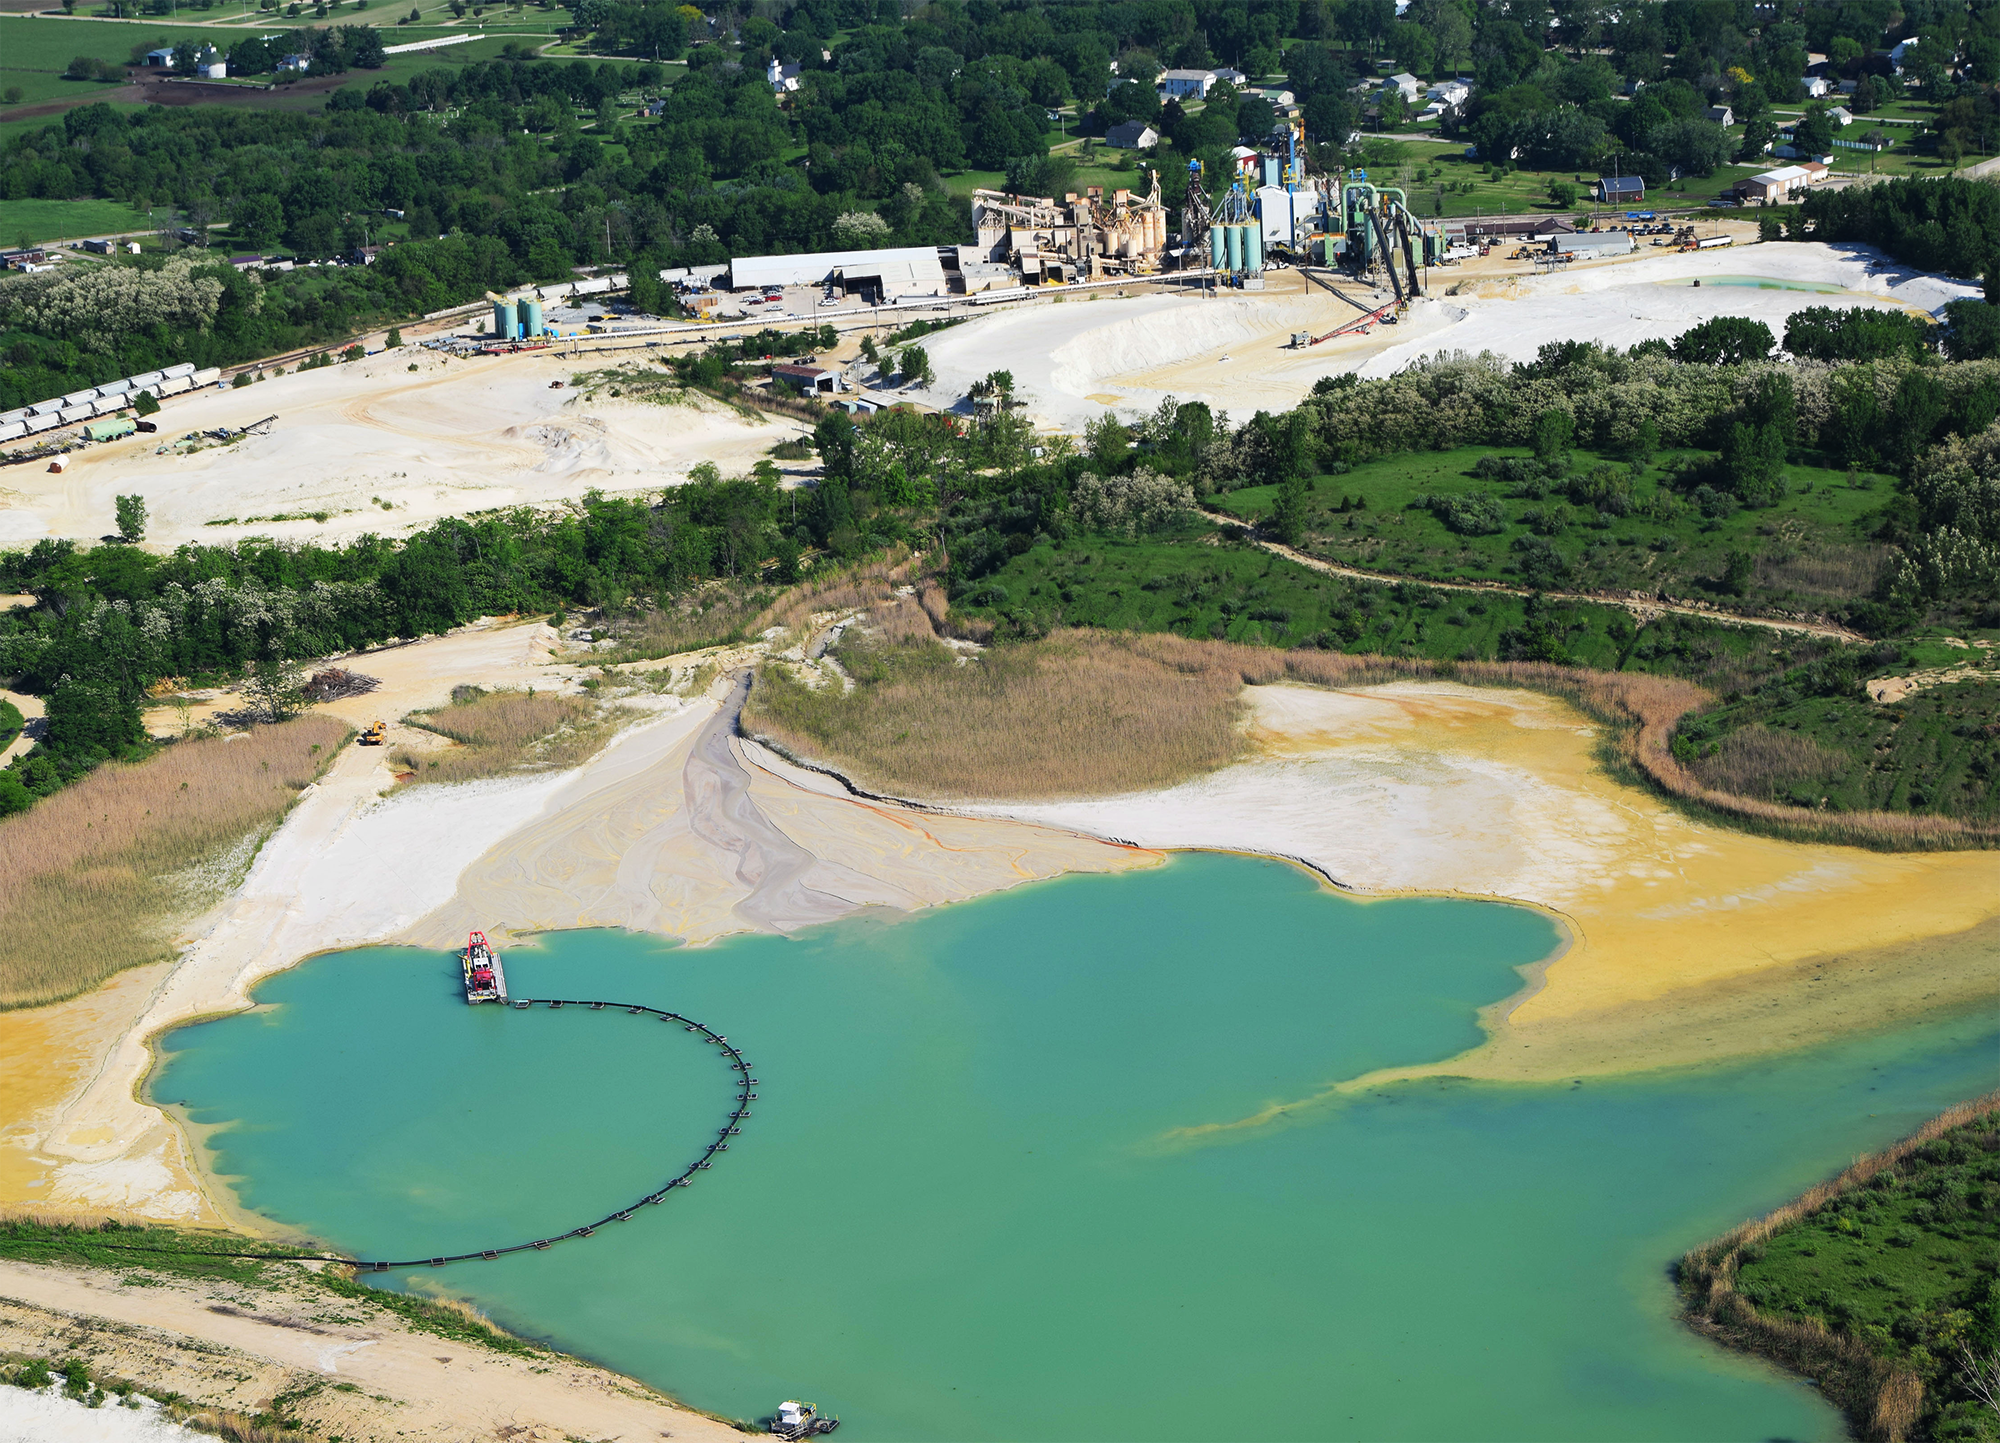 Manley Brothers frac sand mine and processing site. Troy Grove, IL.